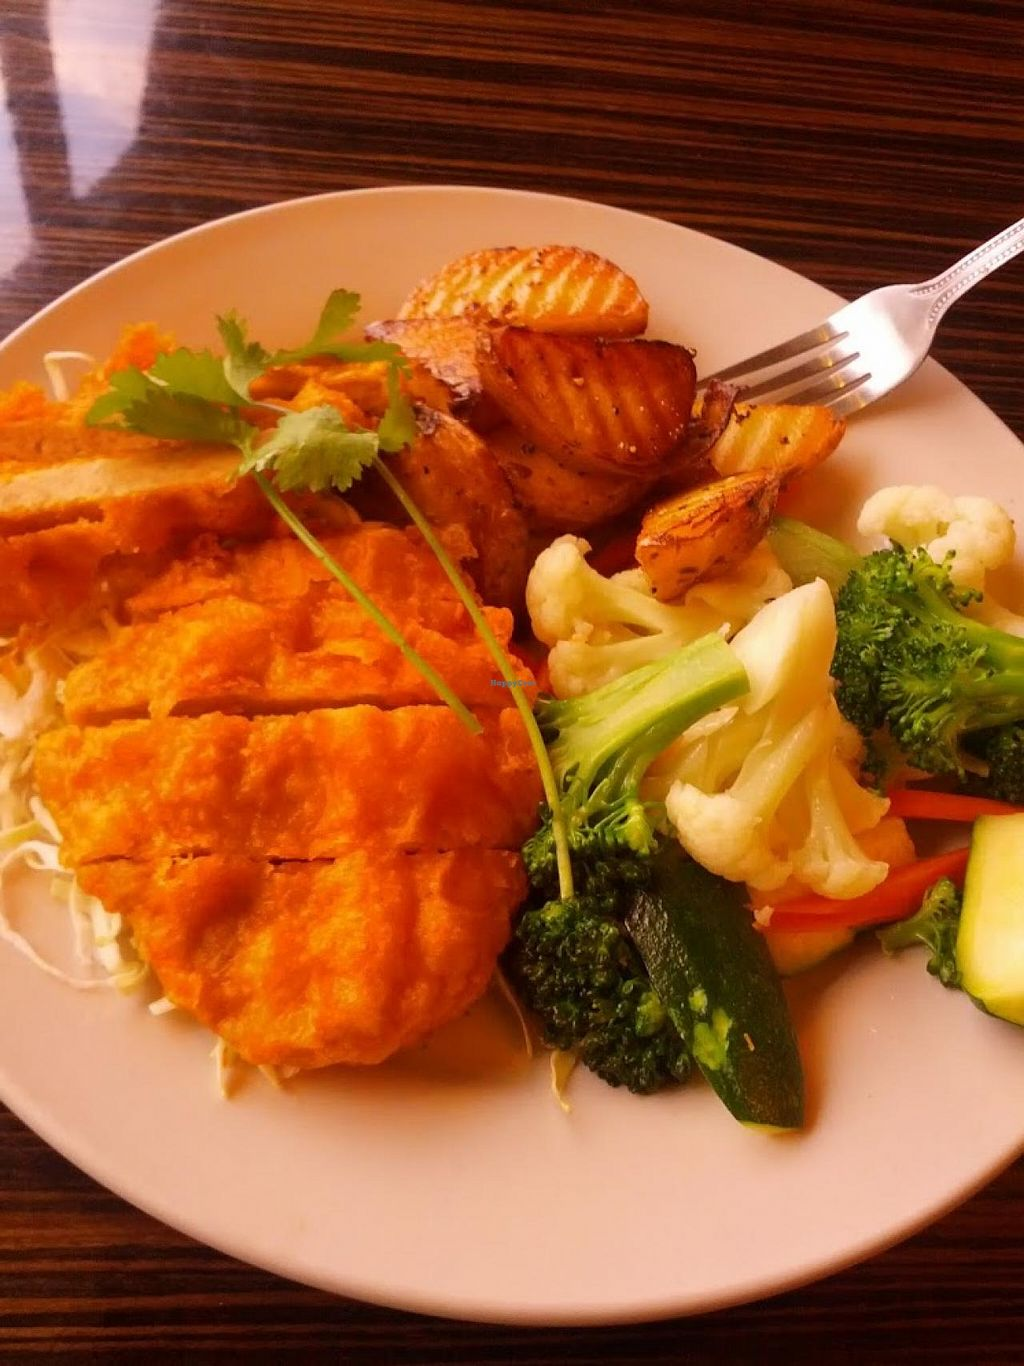 """Photo of LA Vegan  by <a href=""""/members/profile/jeshualack"""">jeshualack</a> <br/>The 'chicken' dinner <br/> July 16, 2015  - <a href='/contact/abuse/image/14477/109571'>Report</a>"""